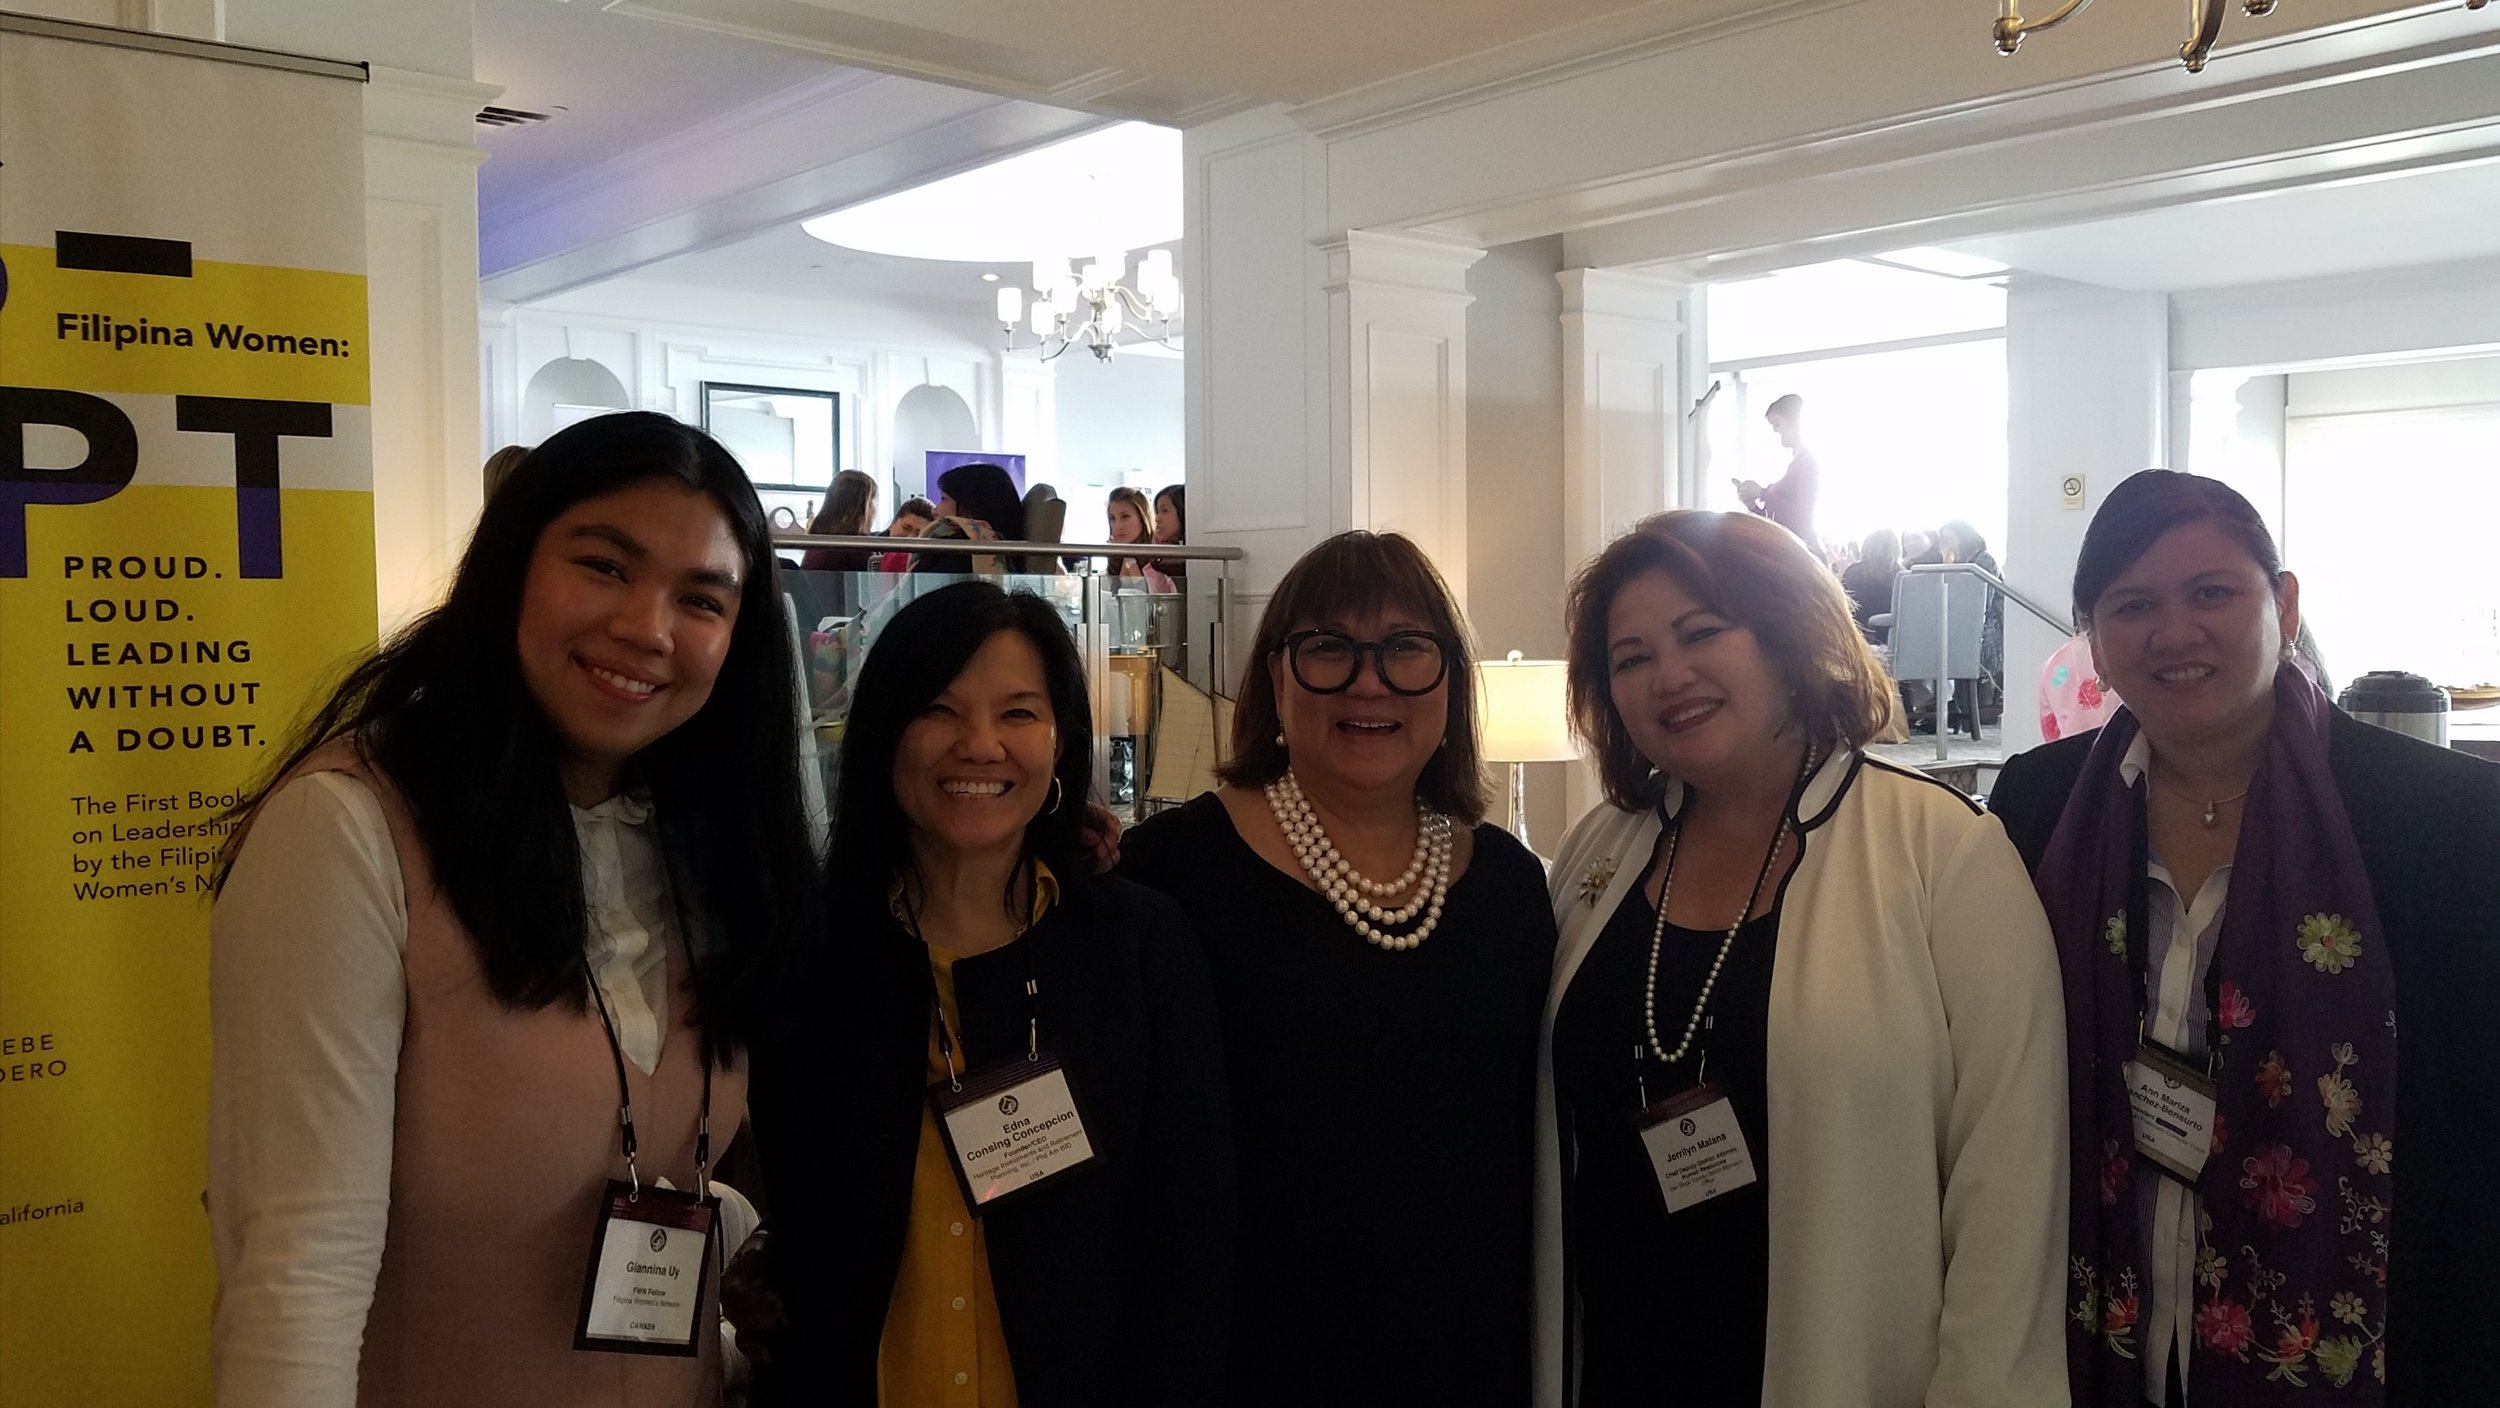 (L-R): FWN Fellow Giannina Uy, Edna Consing Concepcion (Global FWN100™ '17), FWN Founder and CEO and 2017 TOP HAT Awardee Marily Mondejar, Jerrilyn Malana (Global FWN100™ '17), and Ann Mariza Sanchez Bensurto (Global FWN100™ '17) at the FWN Summit 2017 in Toronto, Canada